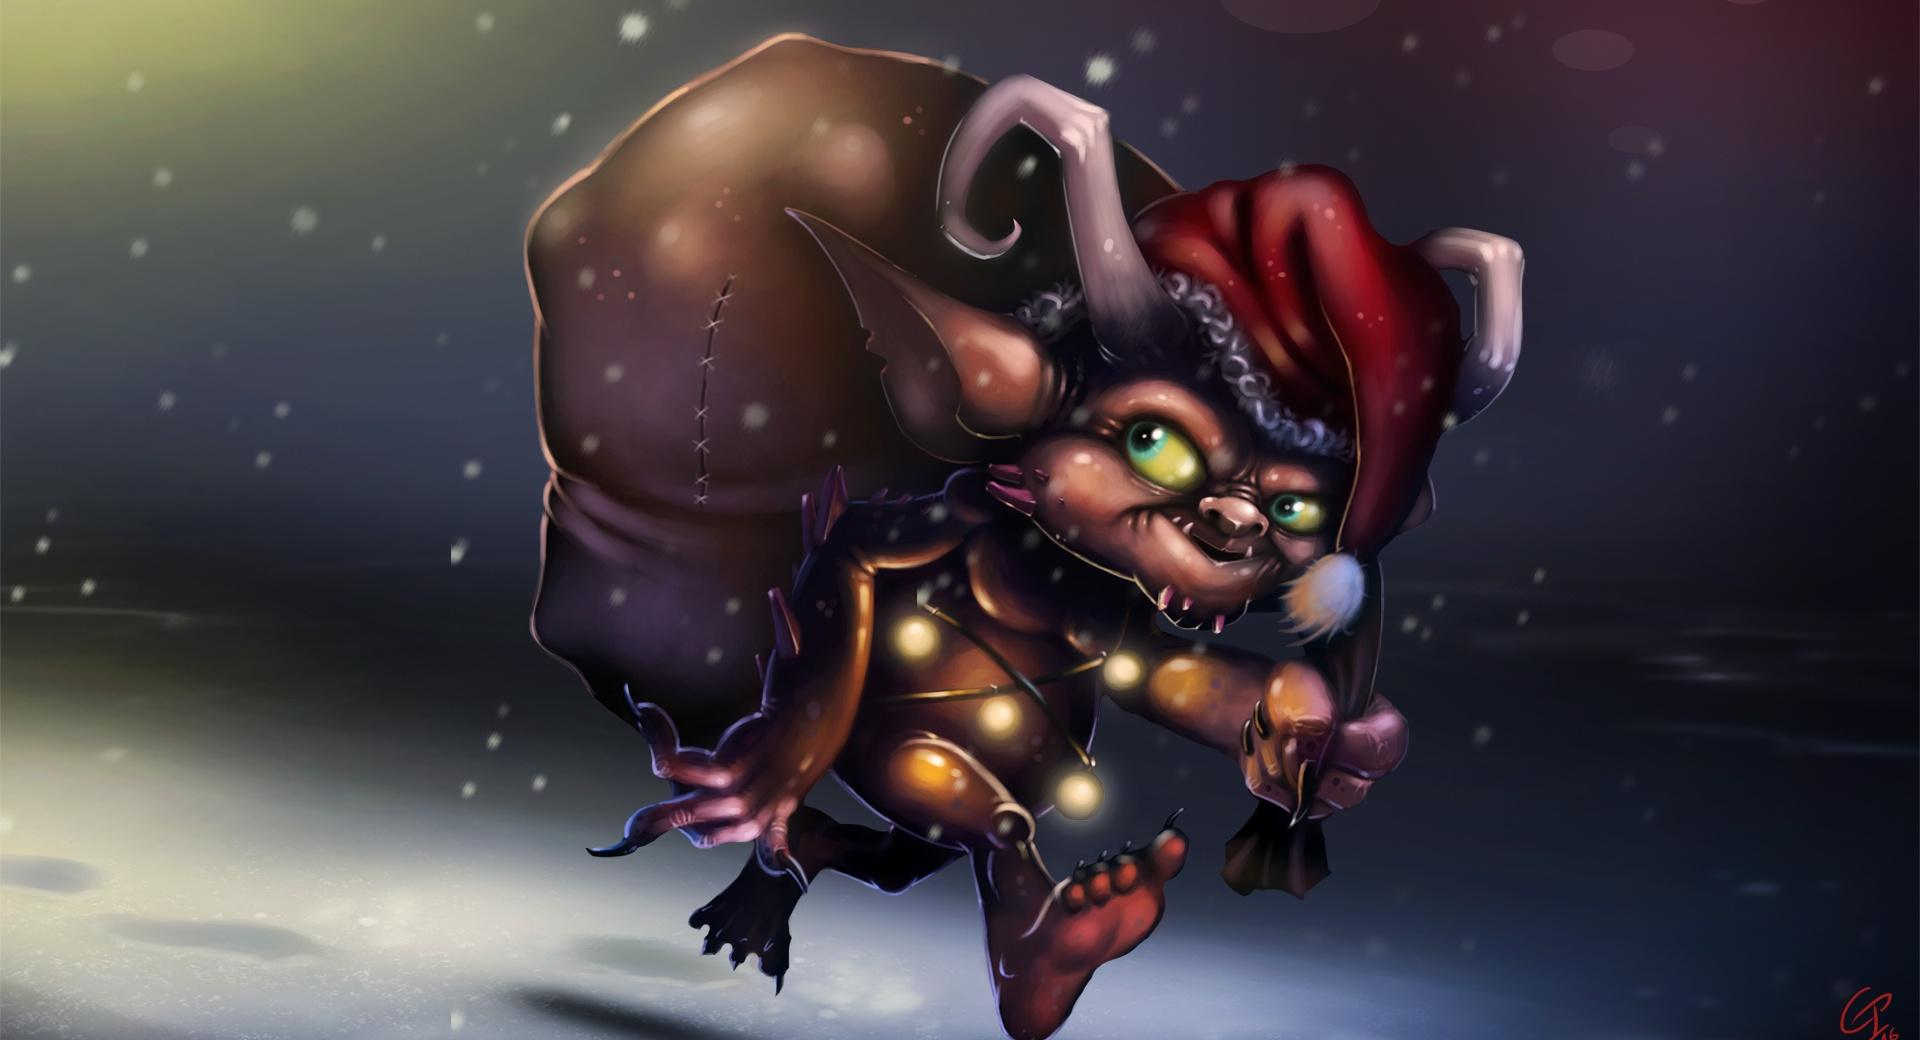 Little Christmas Prowler wallpapers HD quality